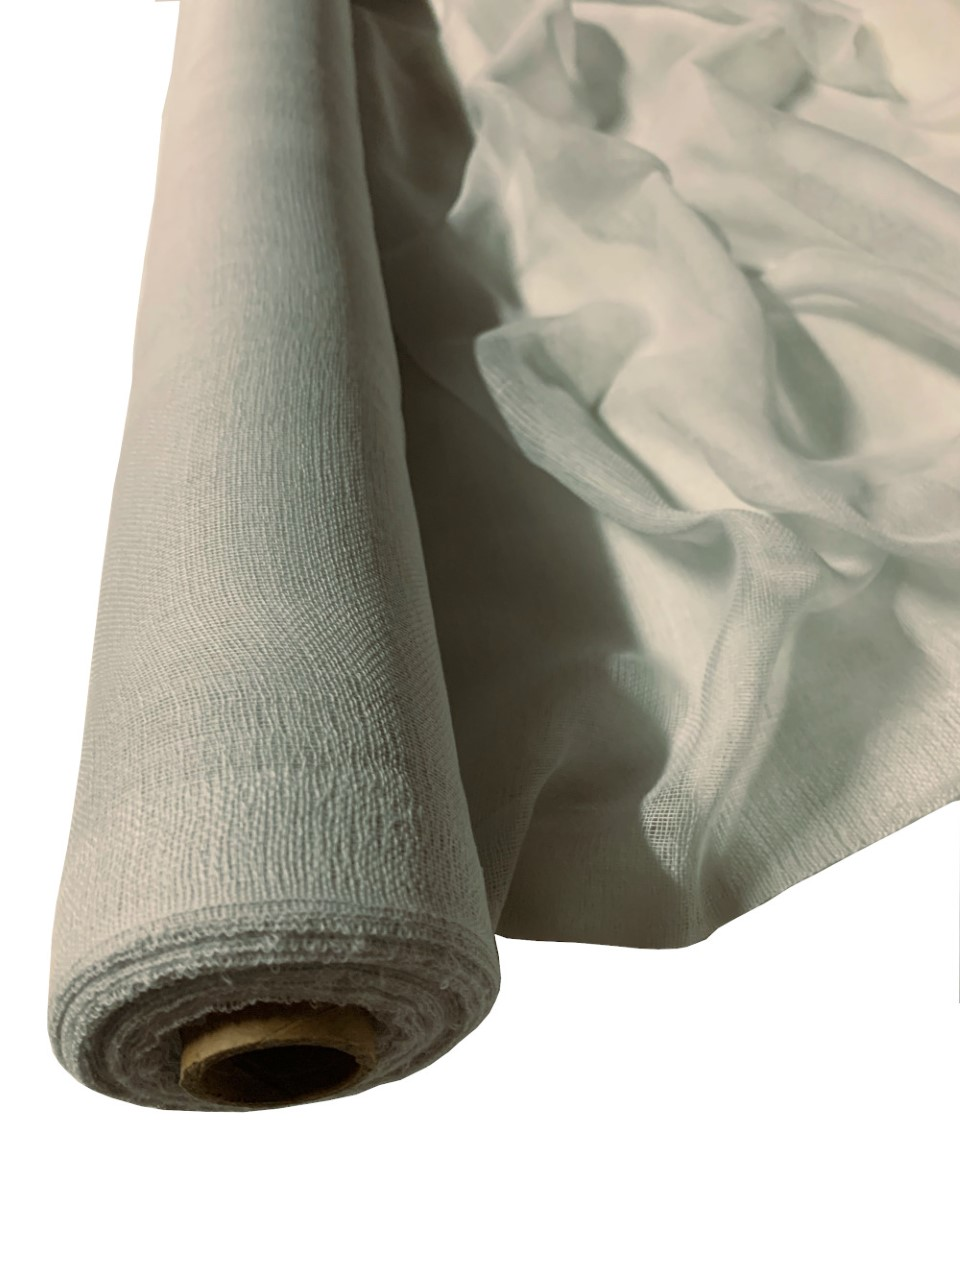 "Light Grey Cheesecloth 36"" x 100 Foot Roll - 100% Cotton"